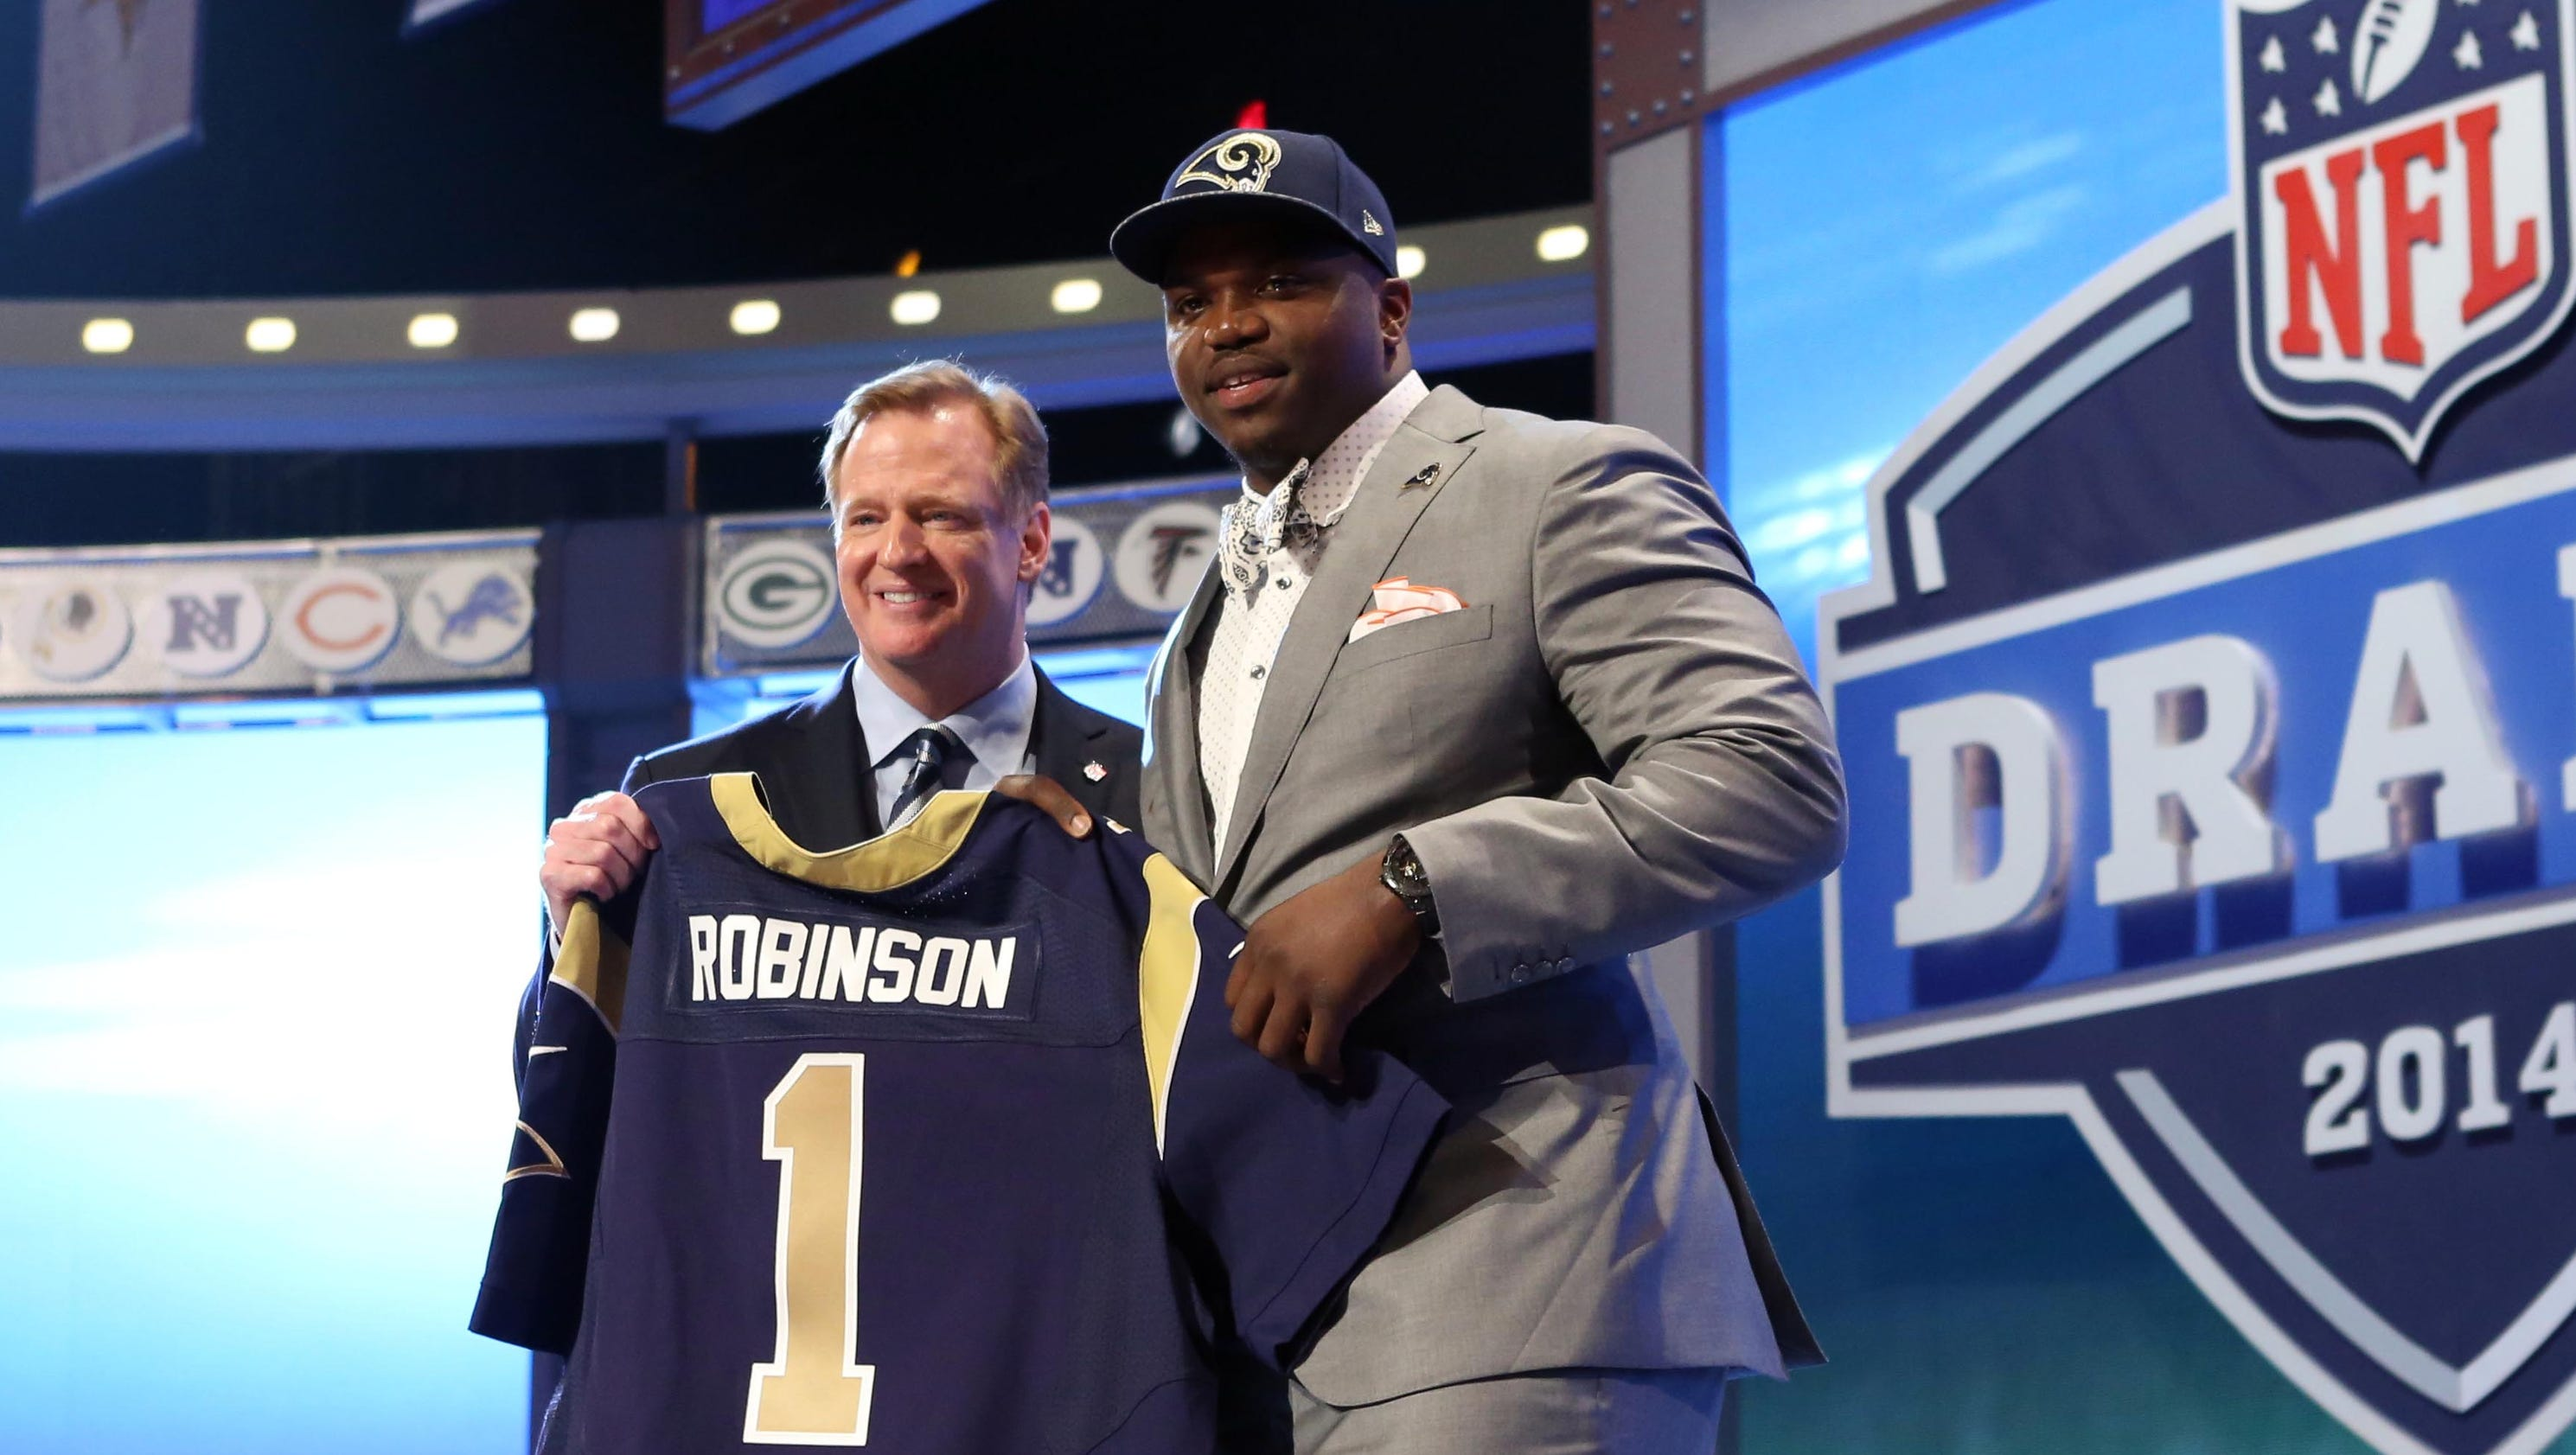 rehanna 2nd draft 3 1 Get the latest 2015 nfl draft results and results from the past this and more all on espncom 2015 nfl draft pick list and results - round 2 round: 1.